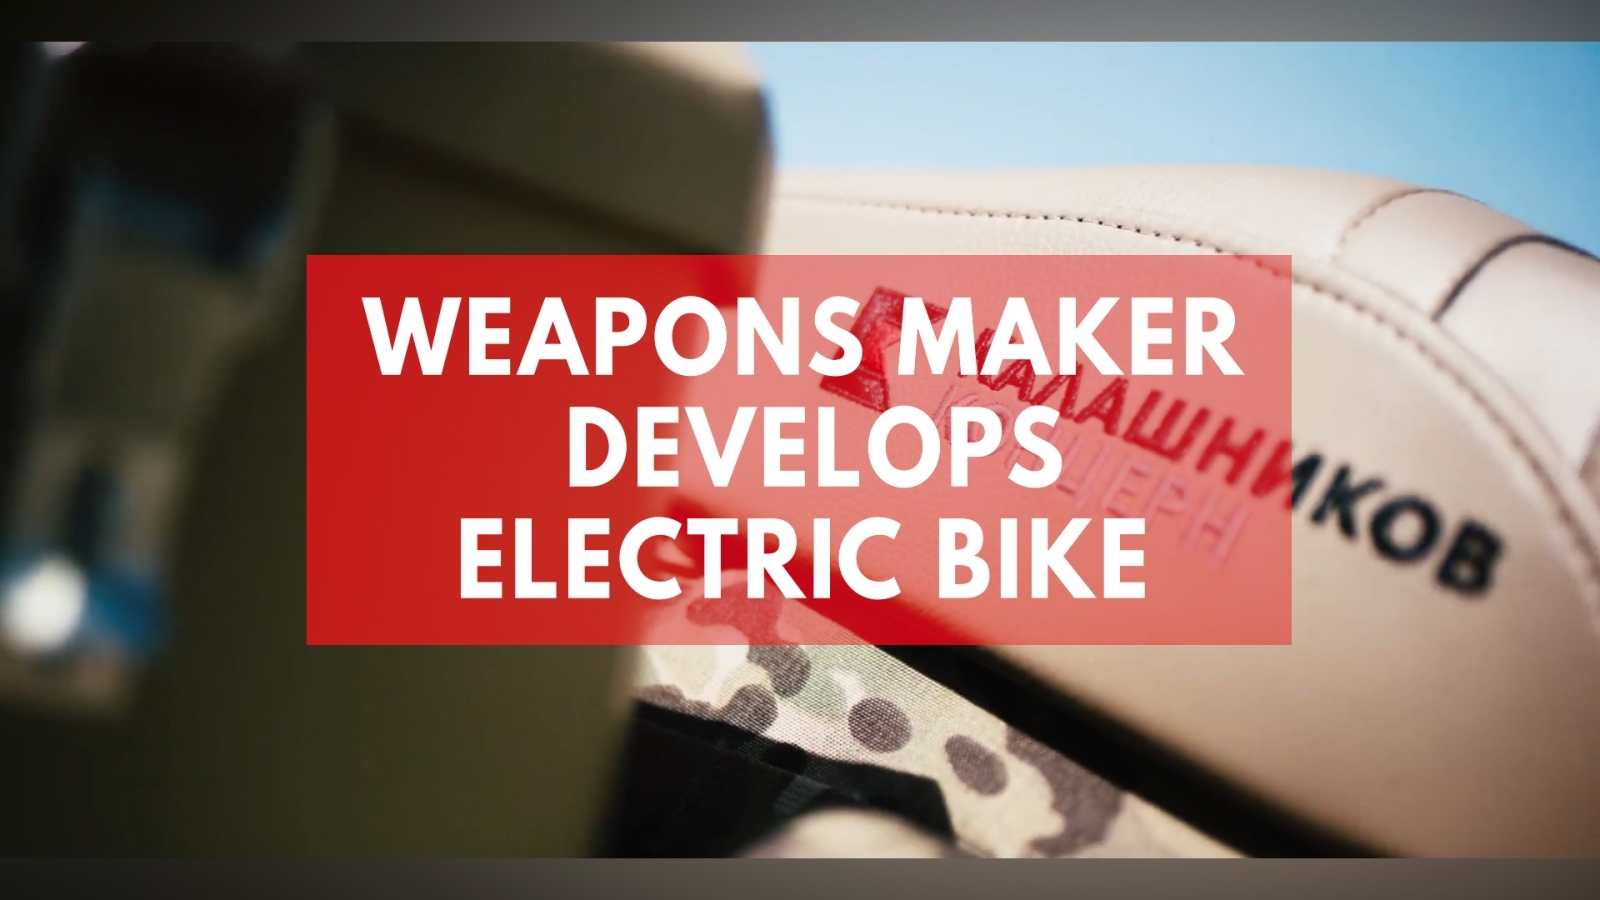 Weapons maker Kalashnikov develops electric bike